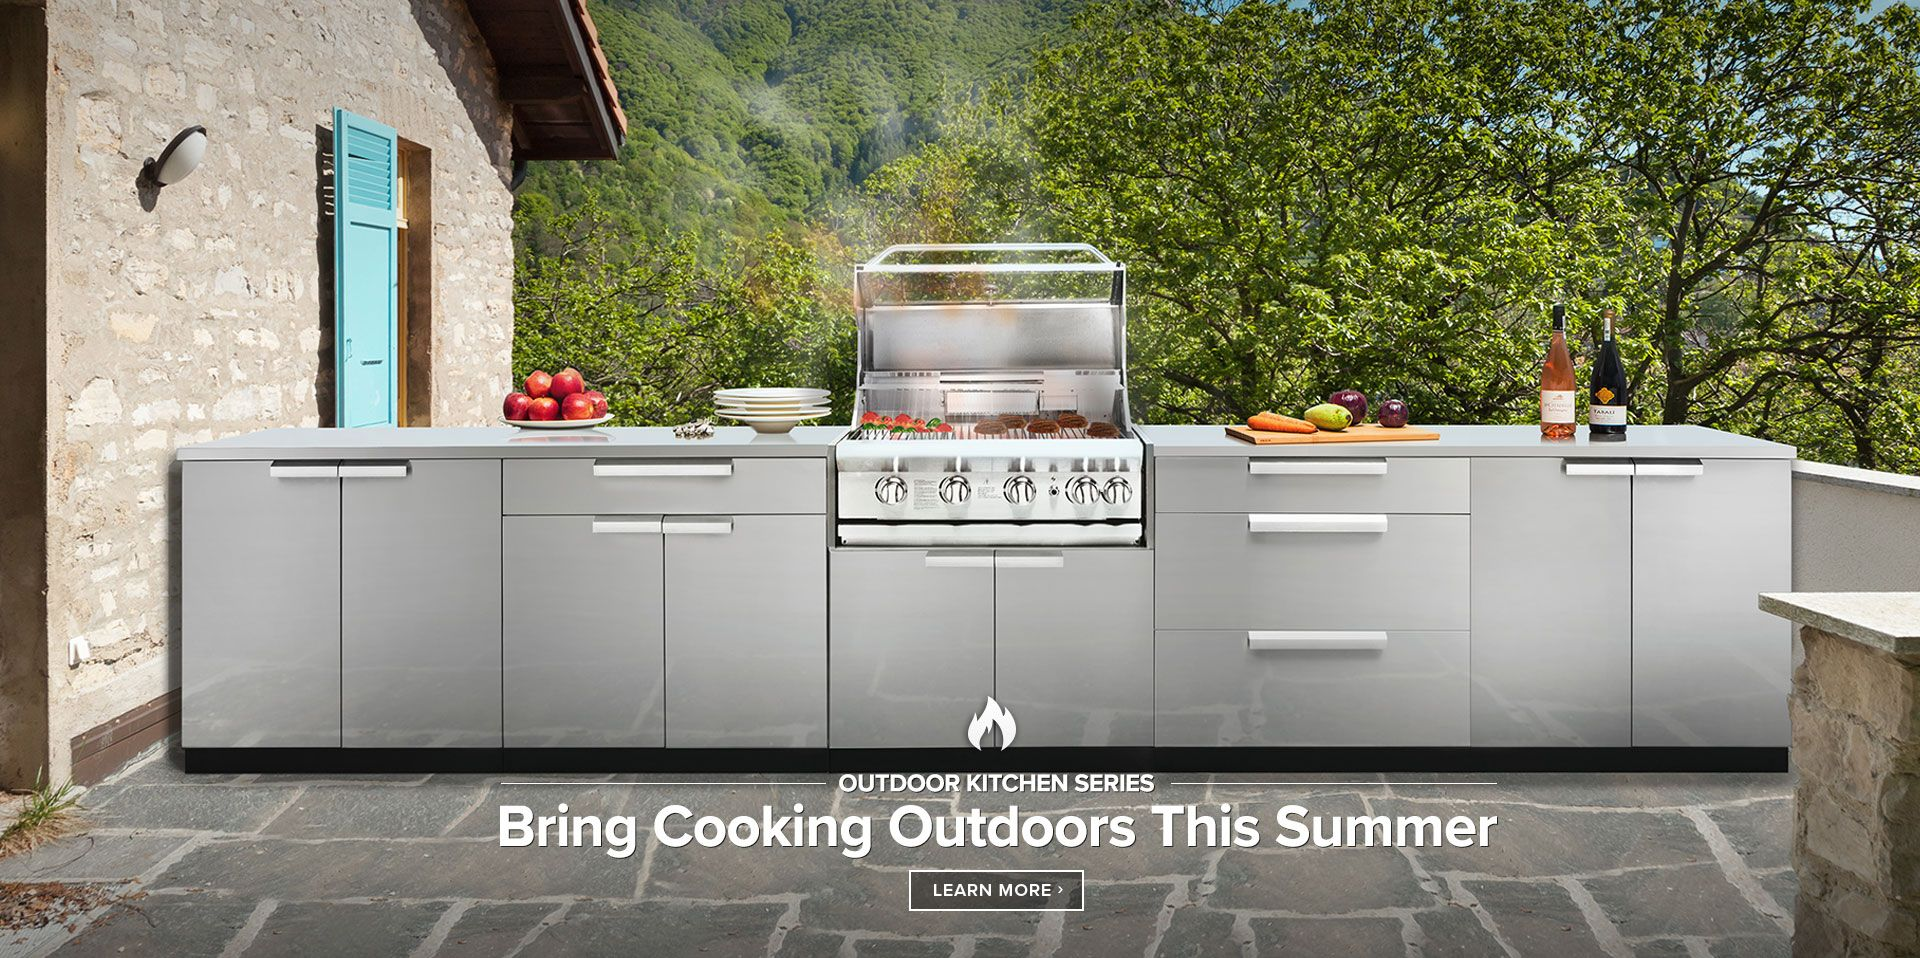 Newage Products Outdoor Kitchen Outdoor Kitchen Newage Products Wine Tasting Room